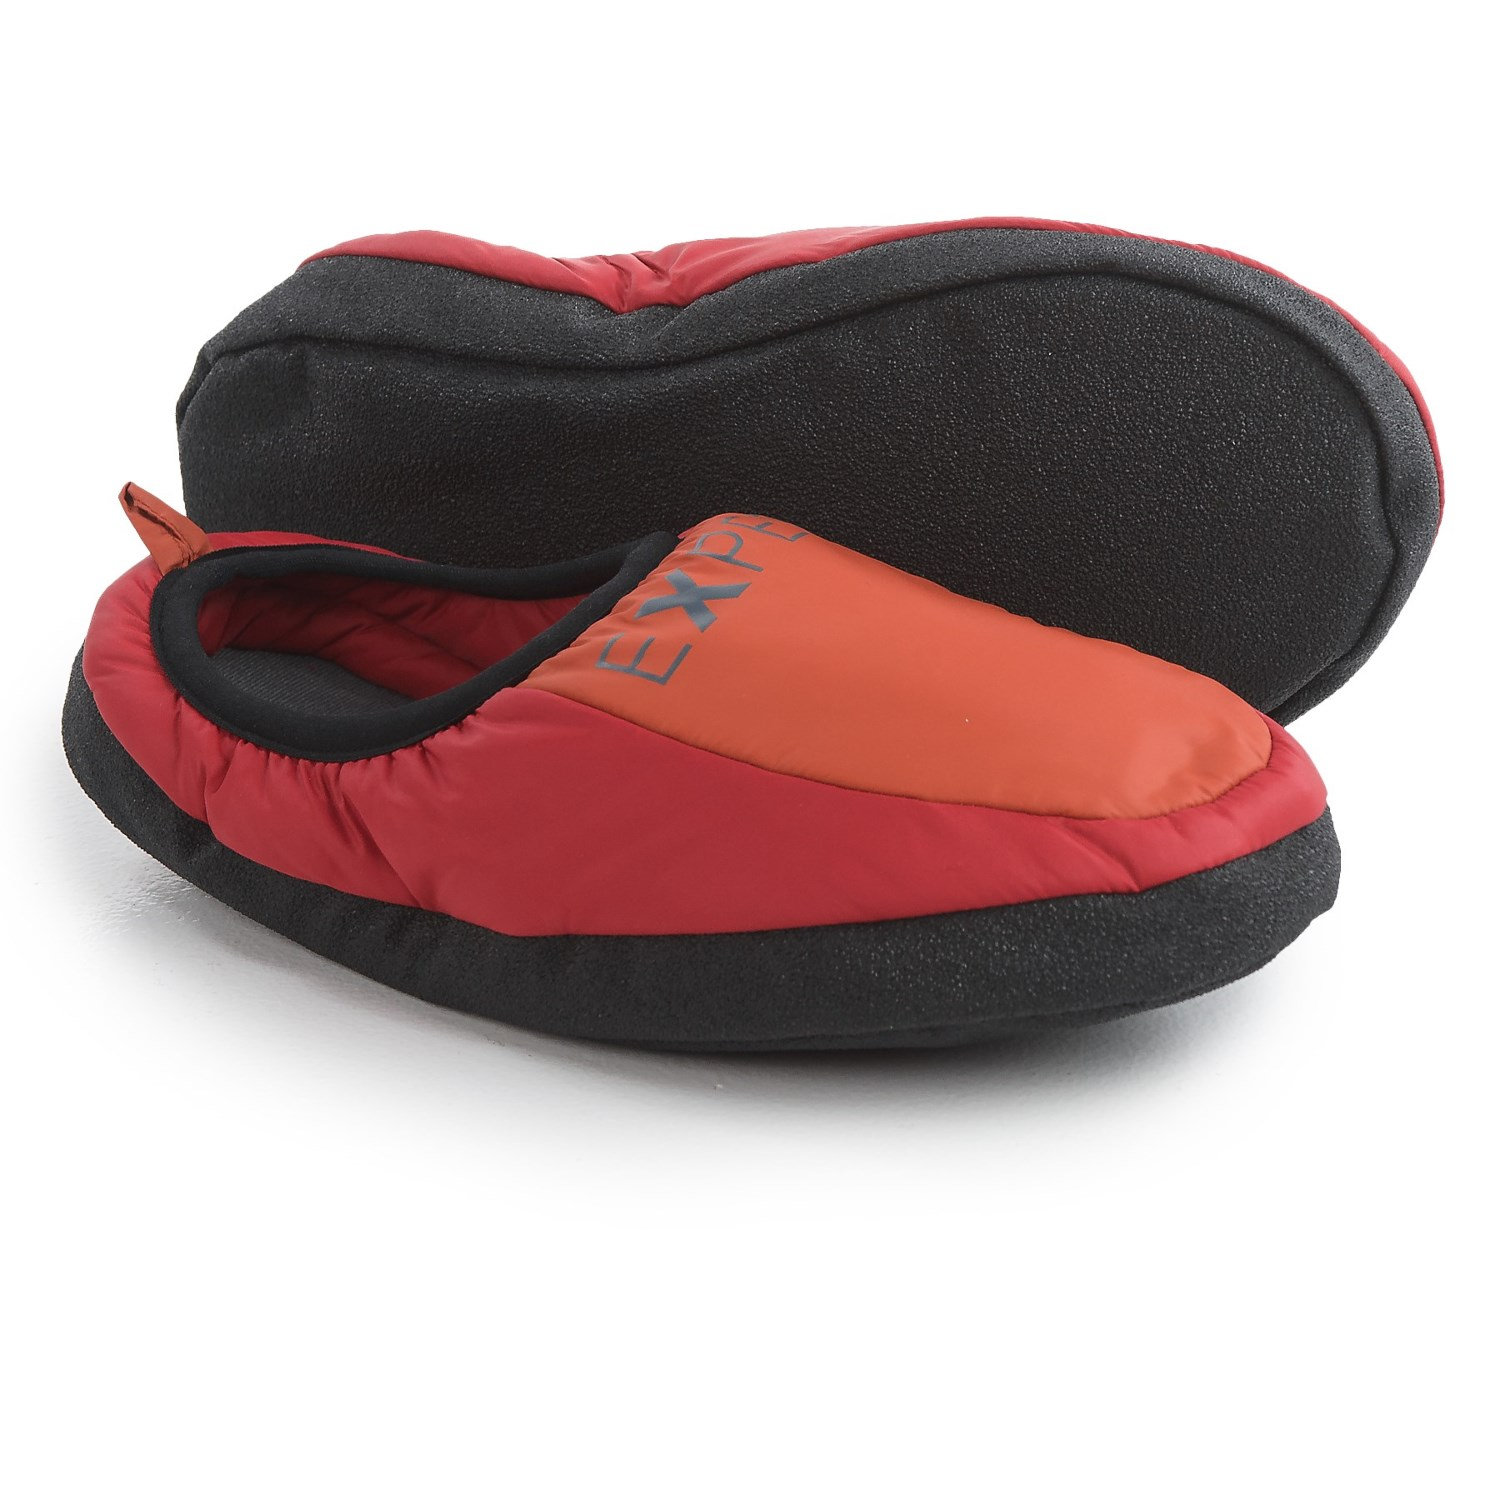 Bedroom Slippers Men Exped Camp Slippers For Men And Women Save 61